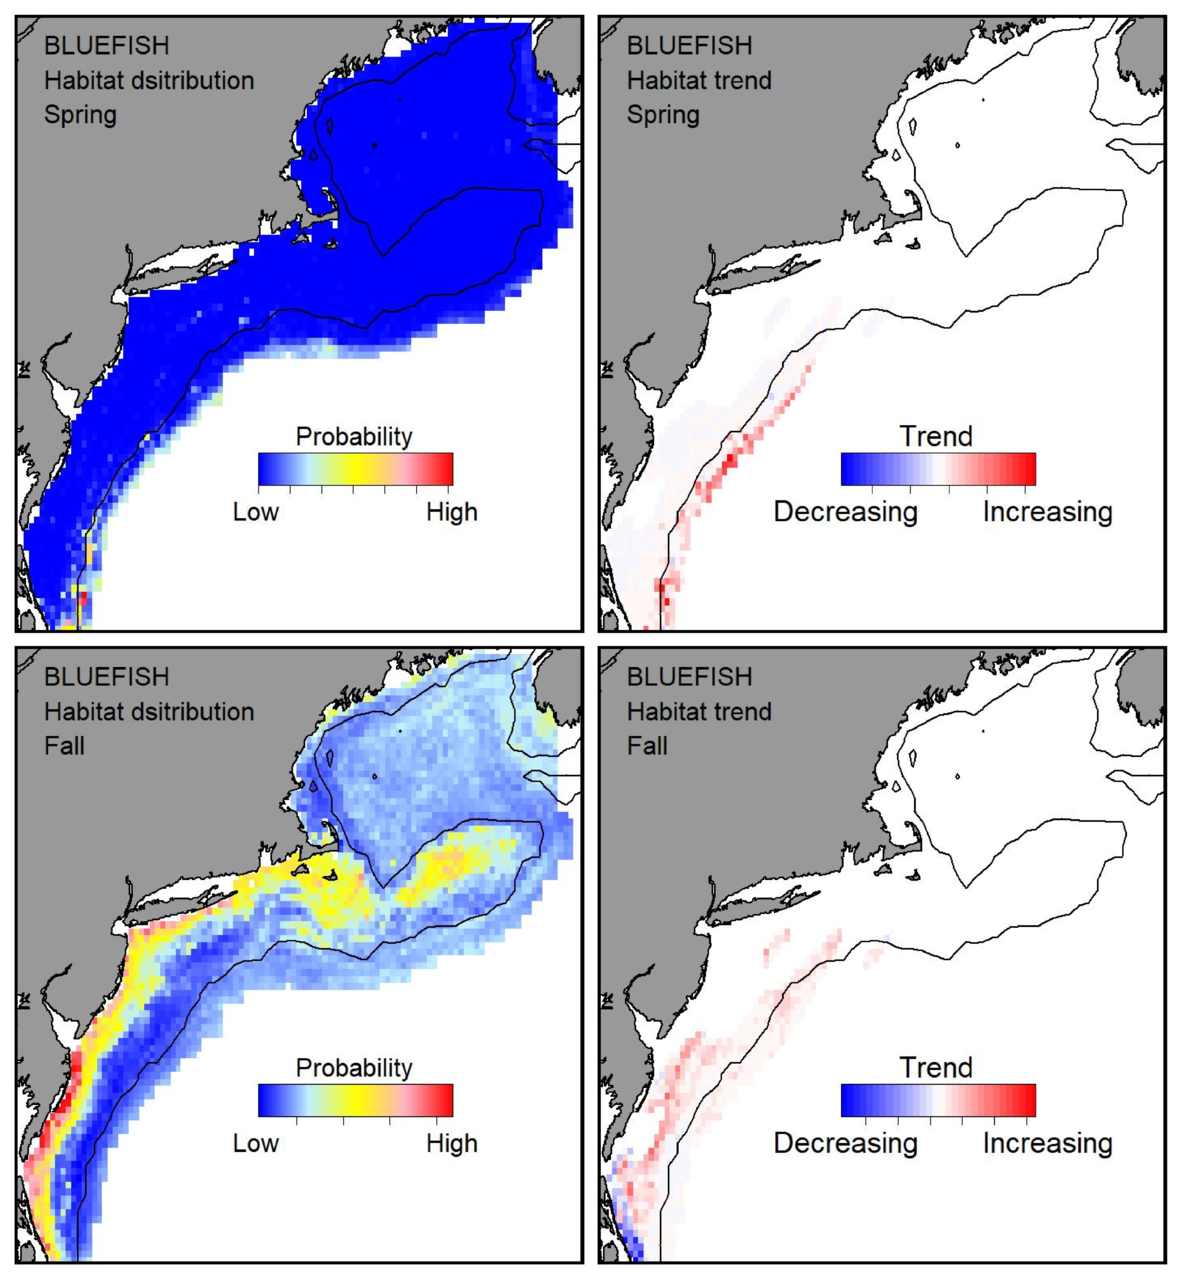 Probable habitat distribution for bluefish showing the highest concentration and increasing trend in the Gulf of Maine during the spring. Bottom row: Probable habitat distribution for bluefish showing the highest concentration and increasing trend in the Gulf of Maine during the fall.